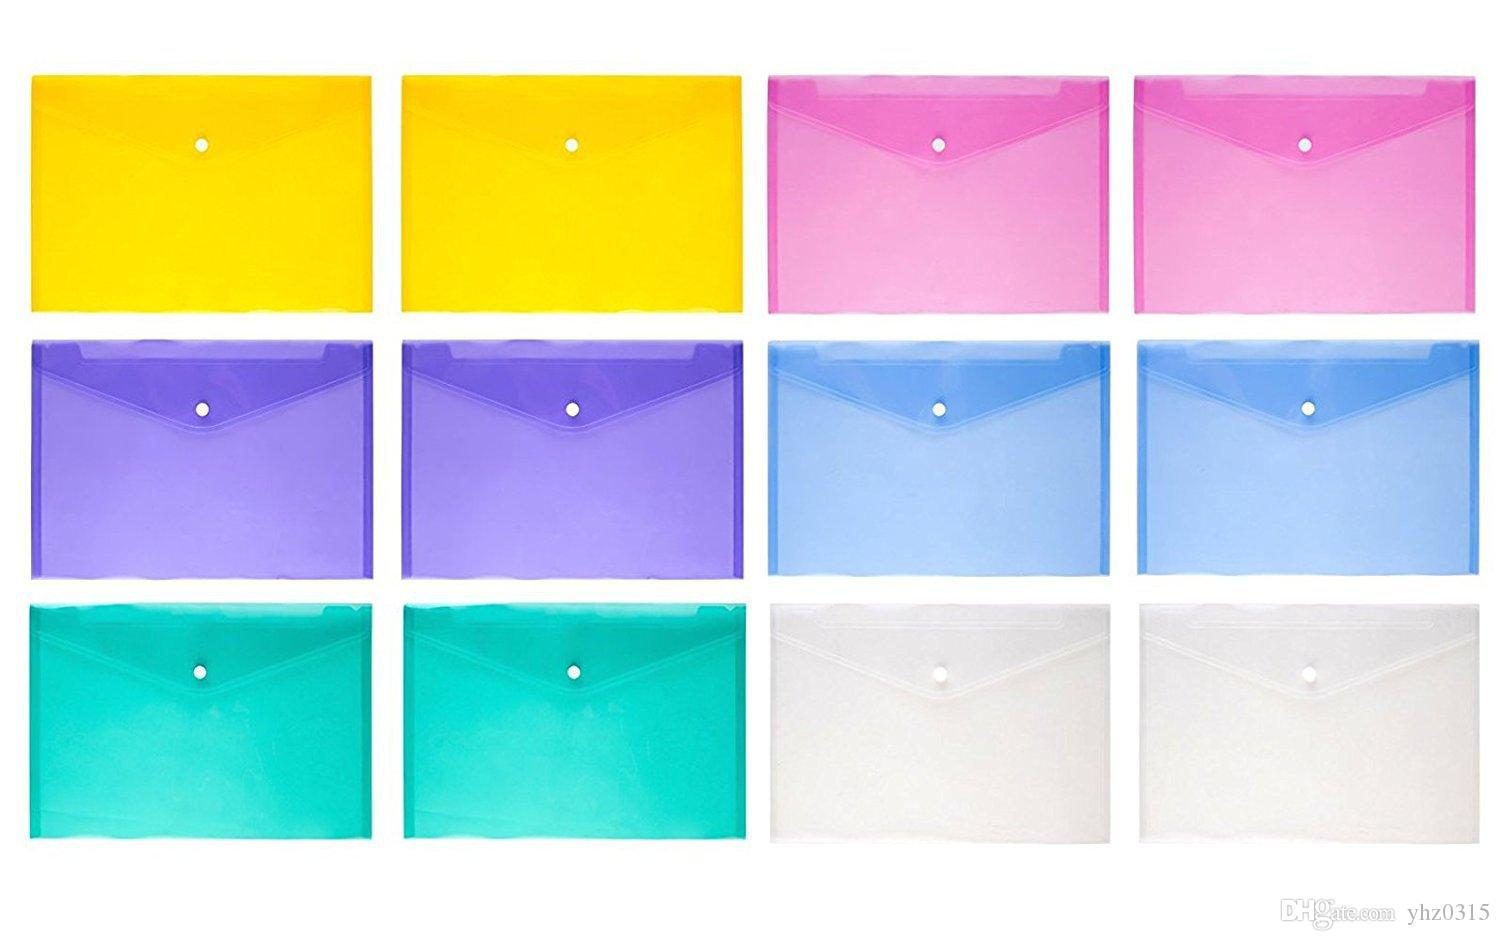 File folder transparent plastic document bag A4 hasp button blew color classified storage stationery bag file holder